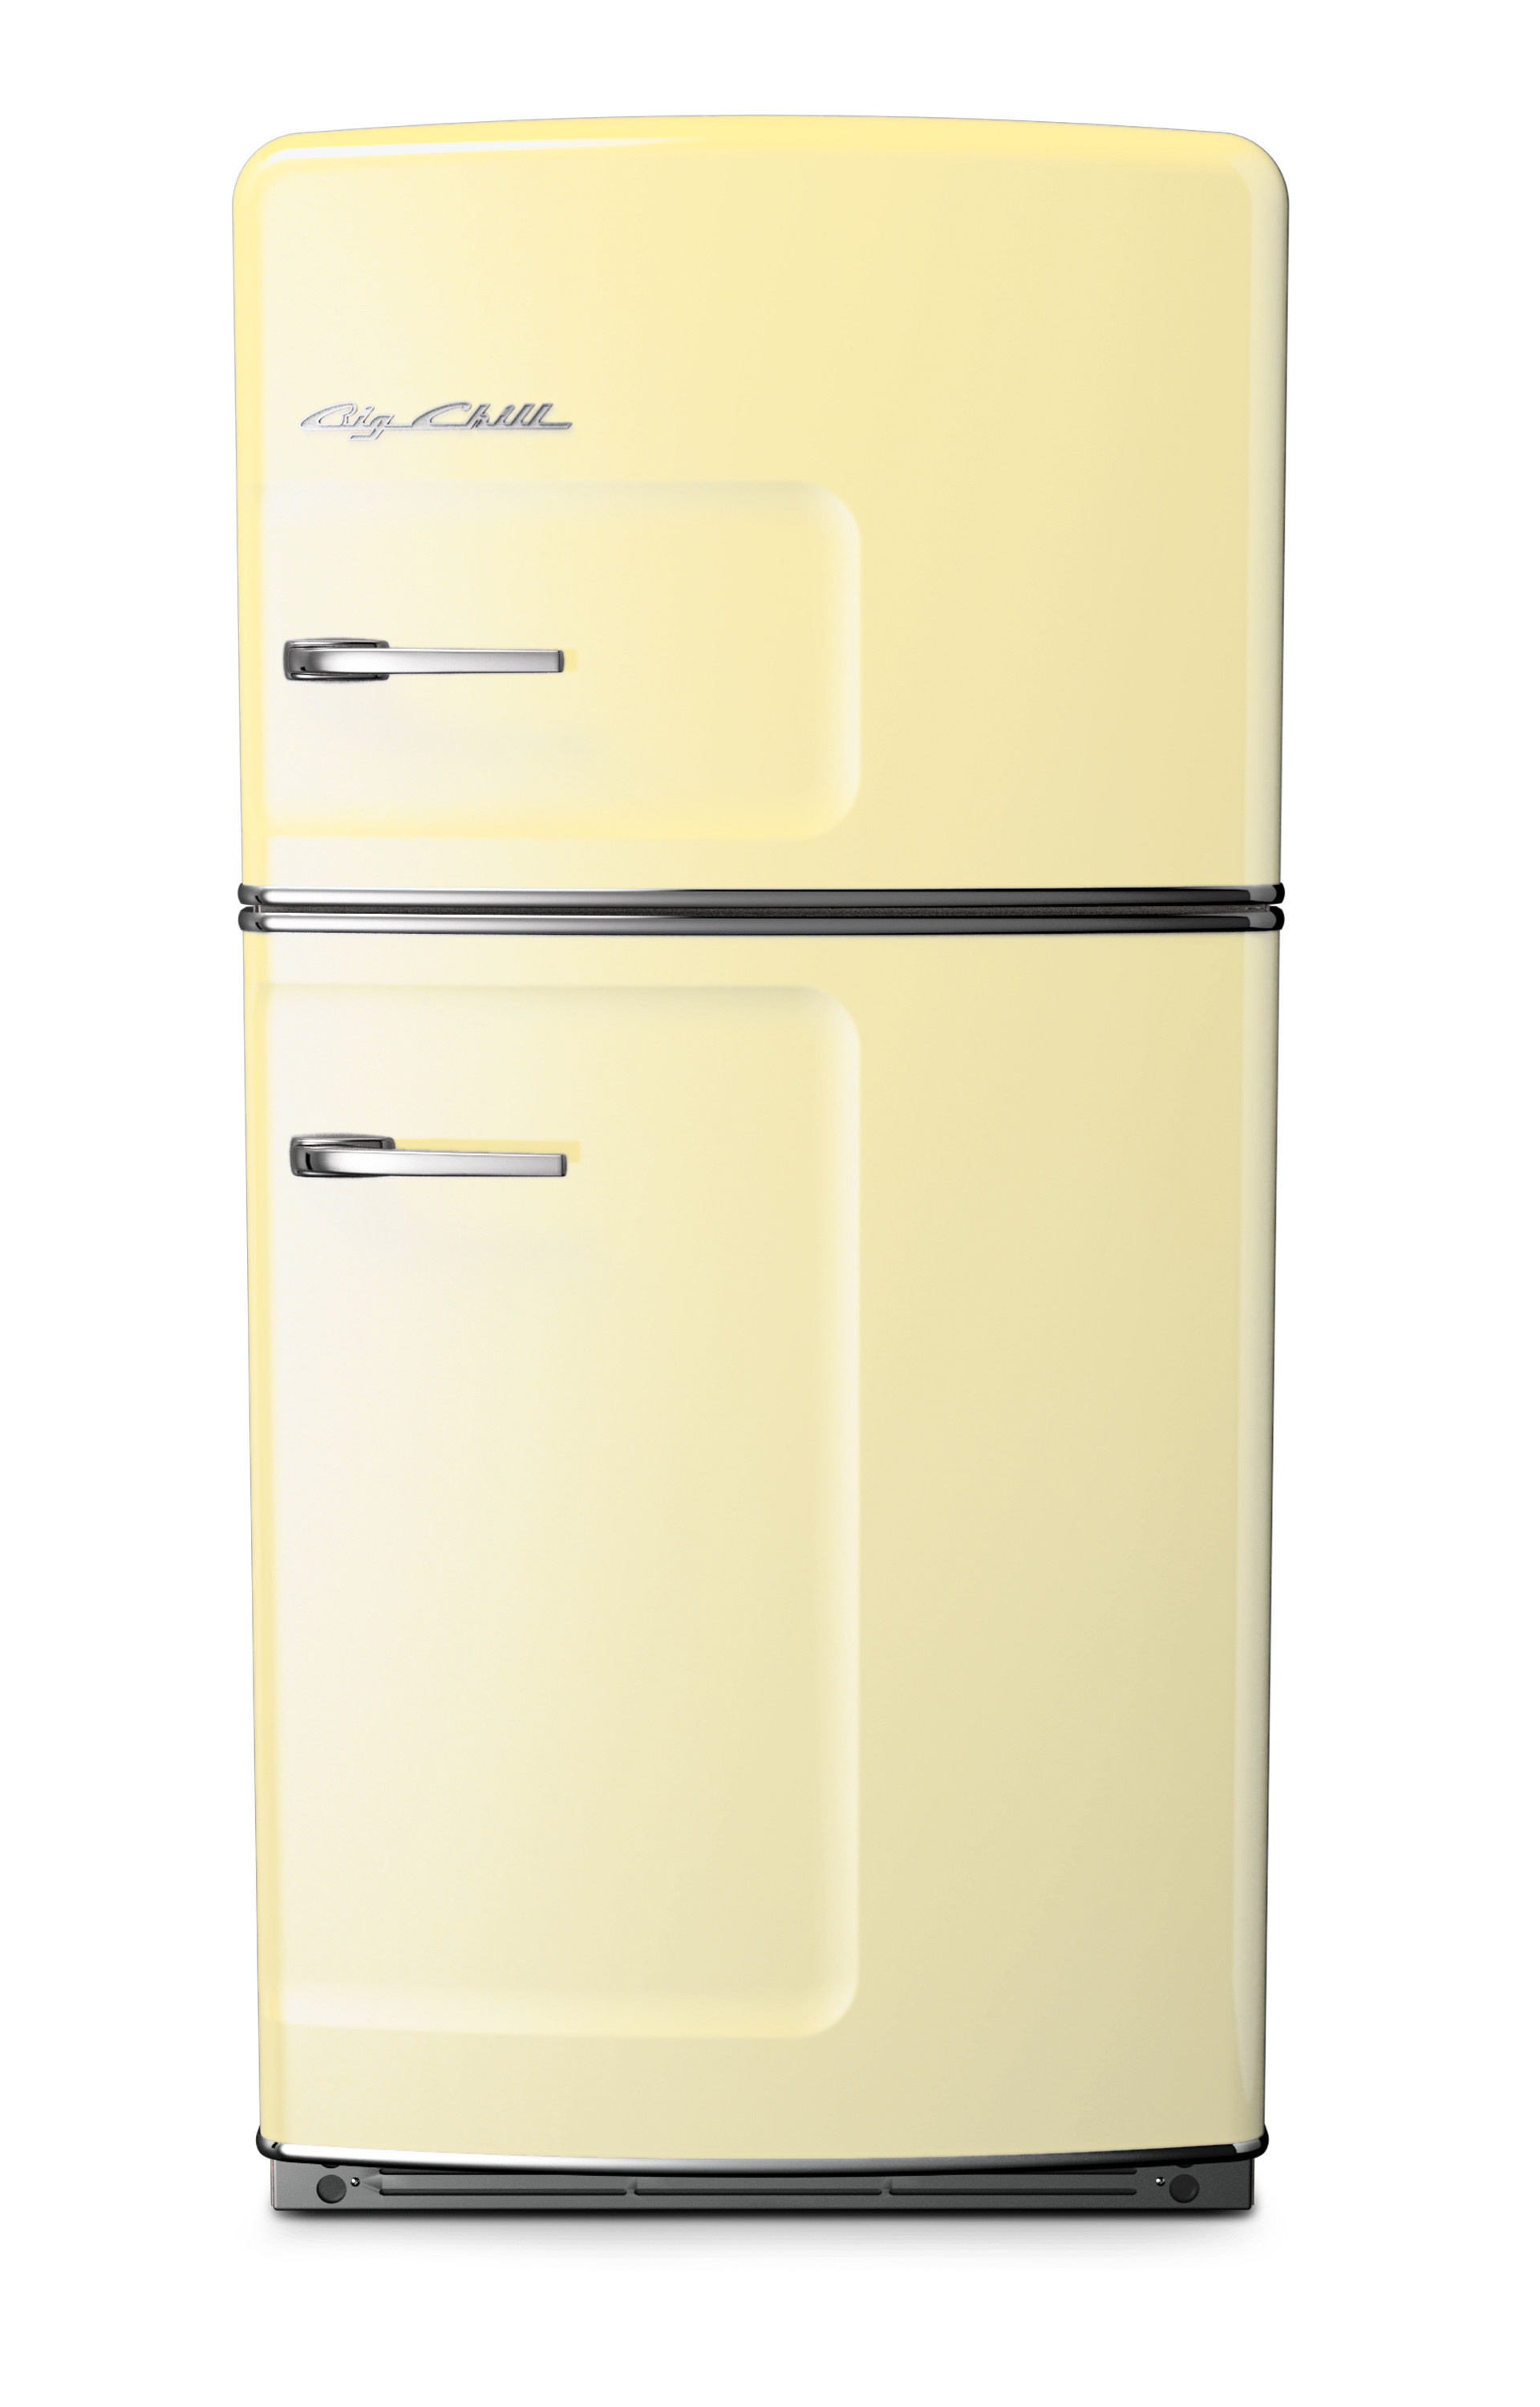 Yellow Fridge Freezer Big Chill Introduces The Coastal Look To The Heart Of The